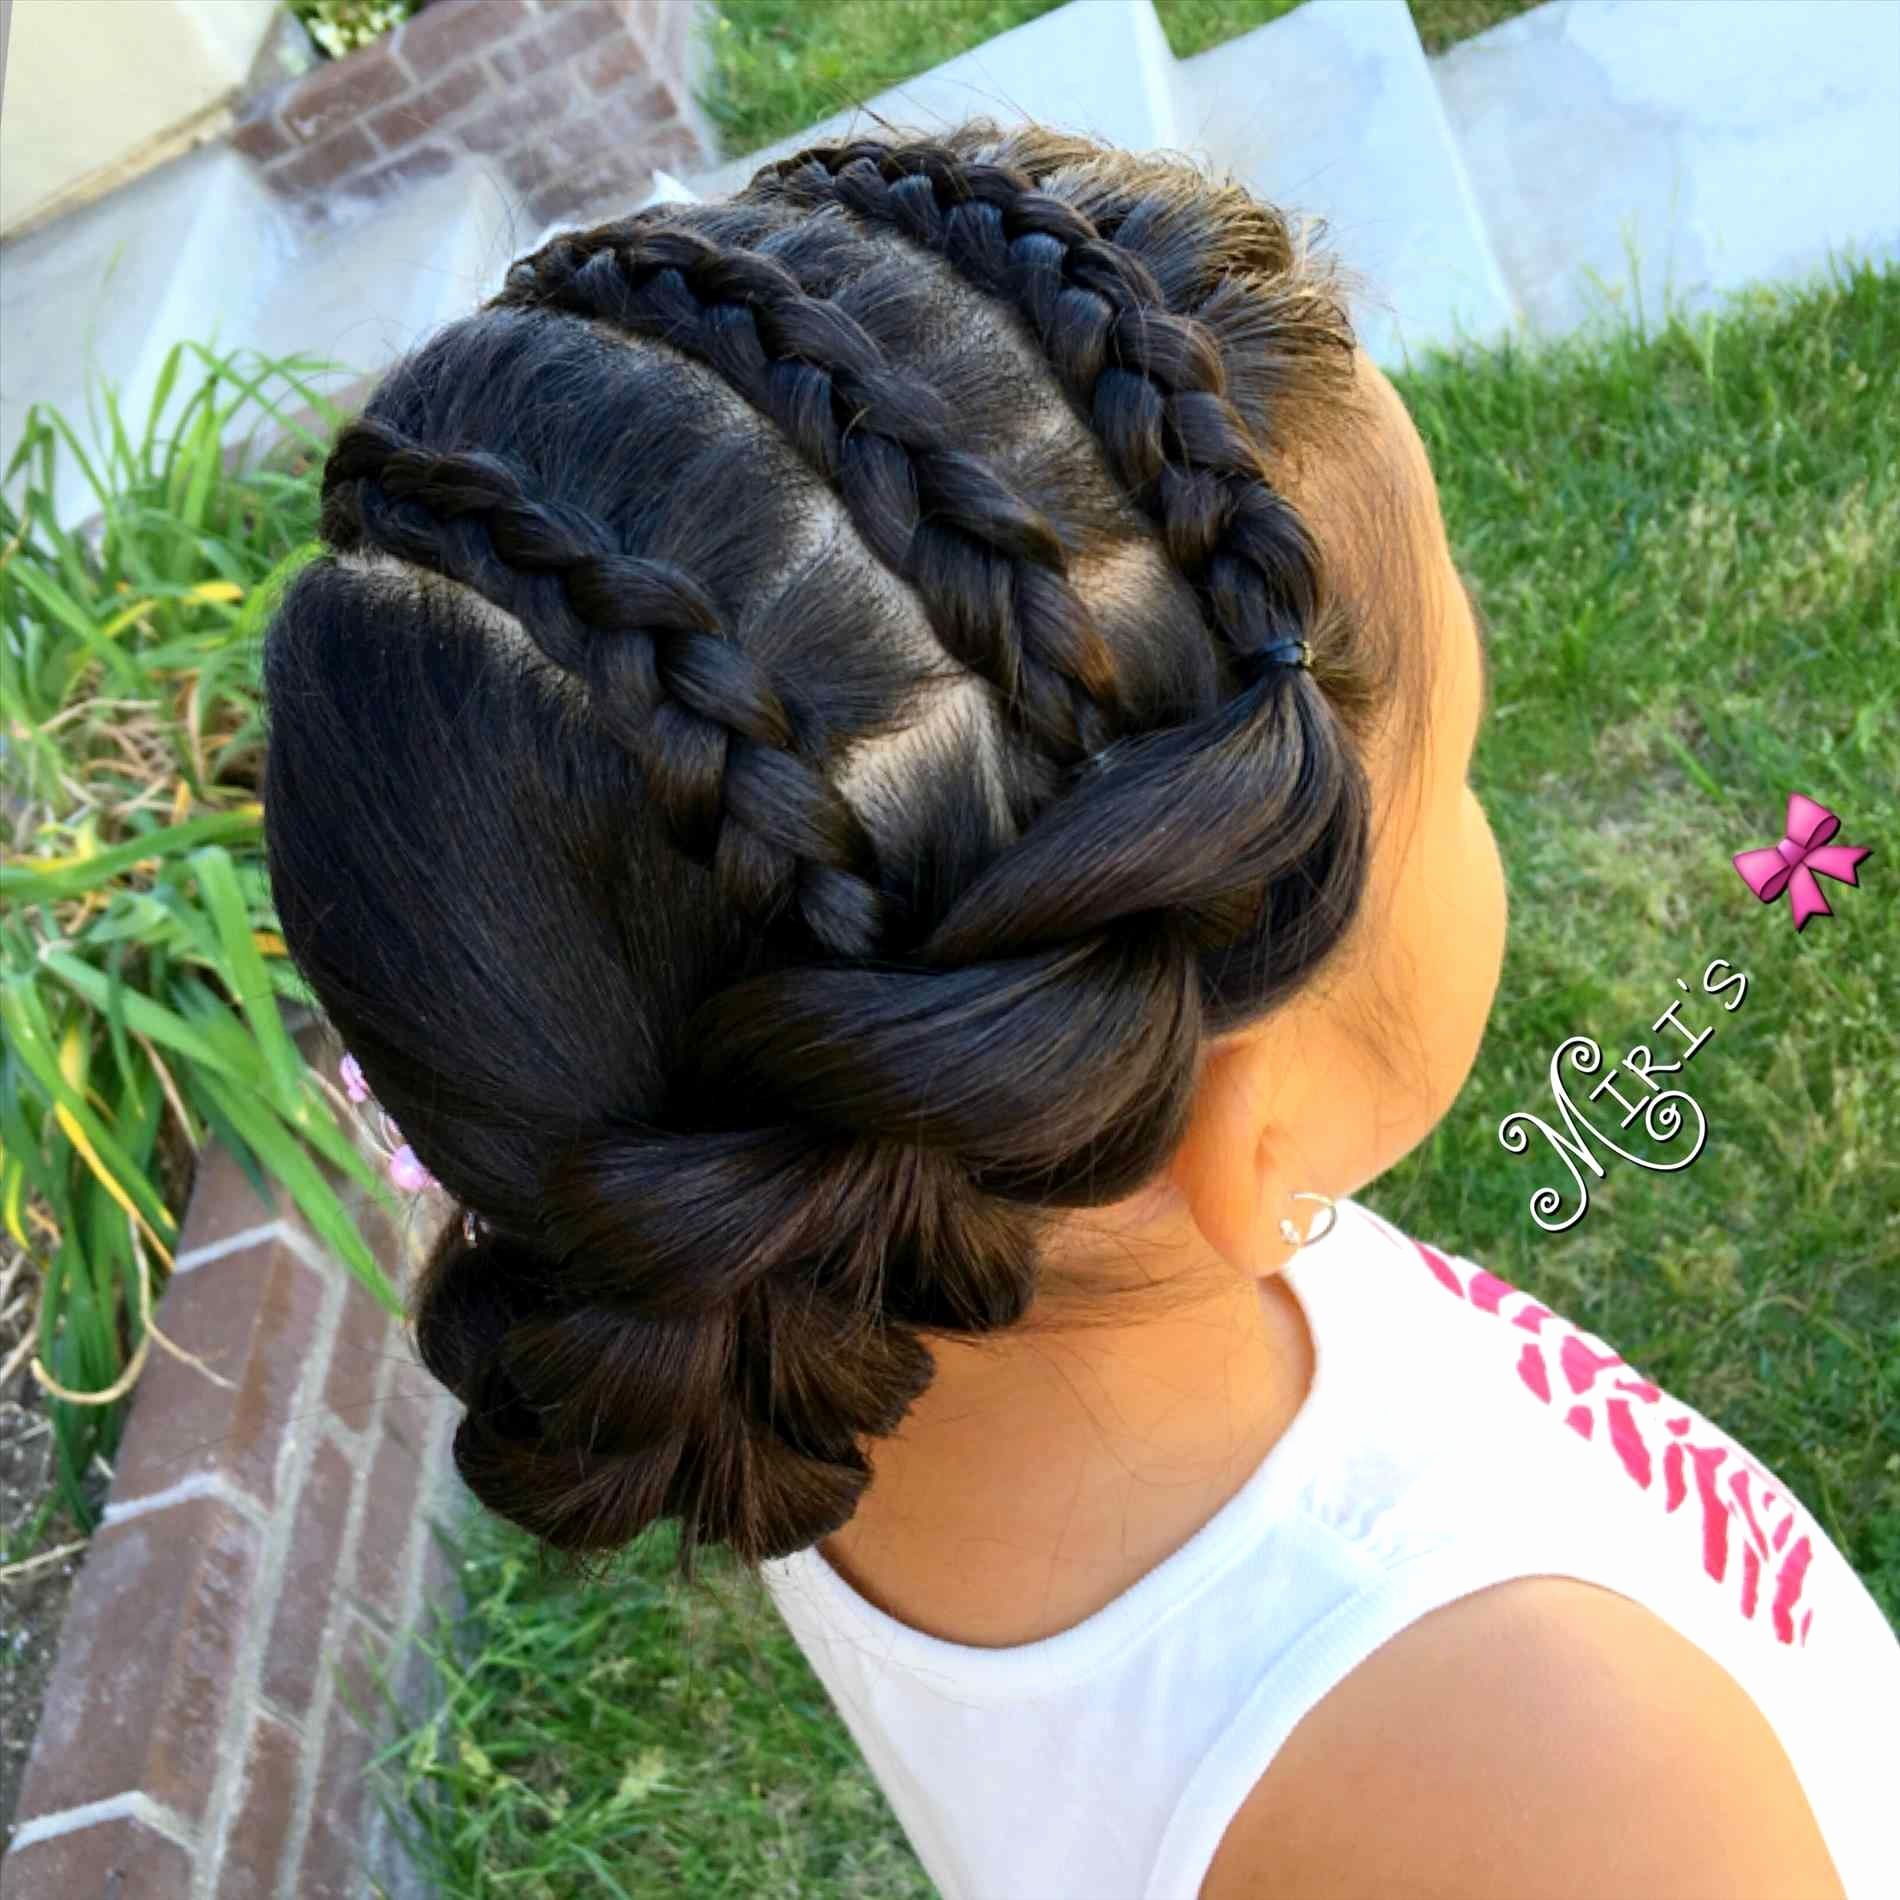 Braid Hairstyles for Kids Beautiful French Braids ...